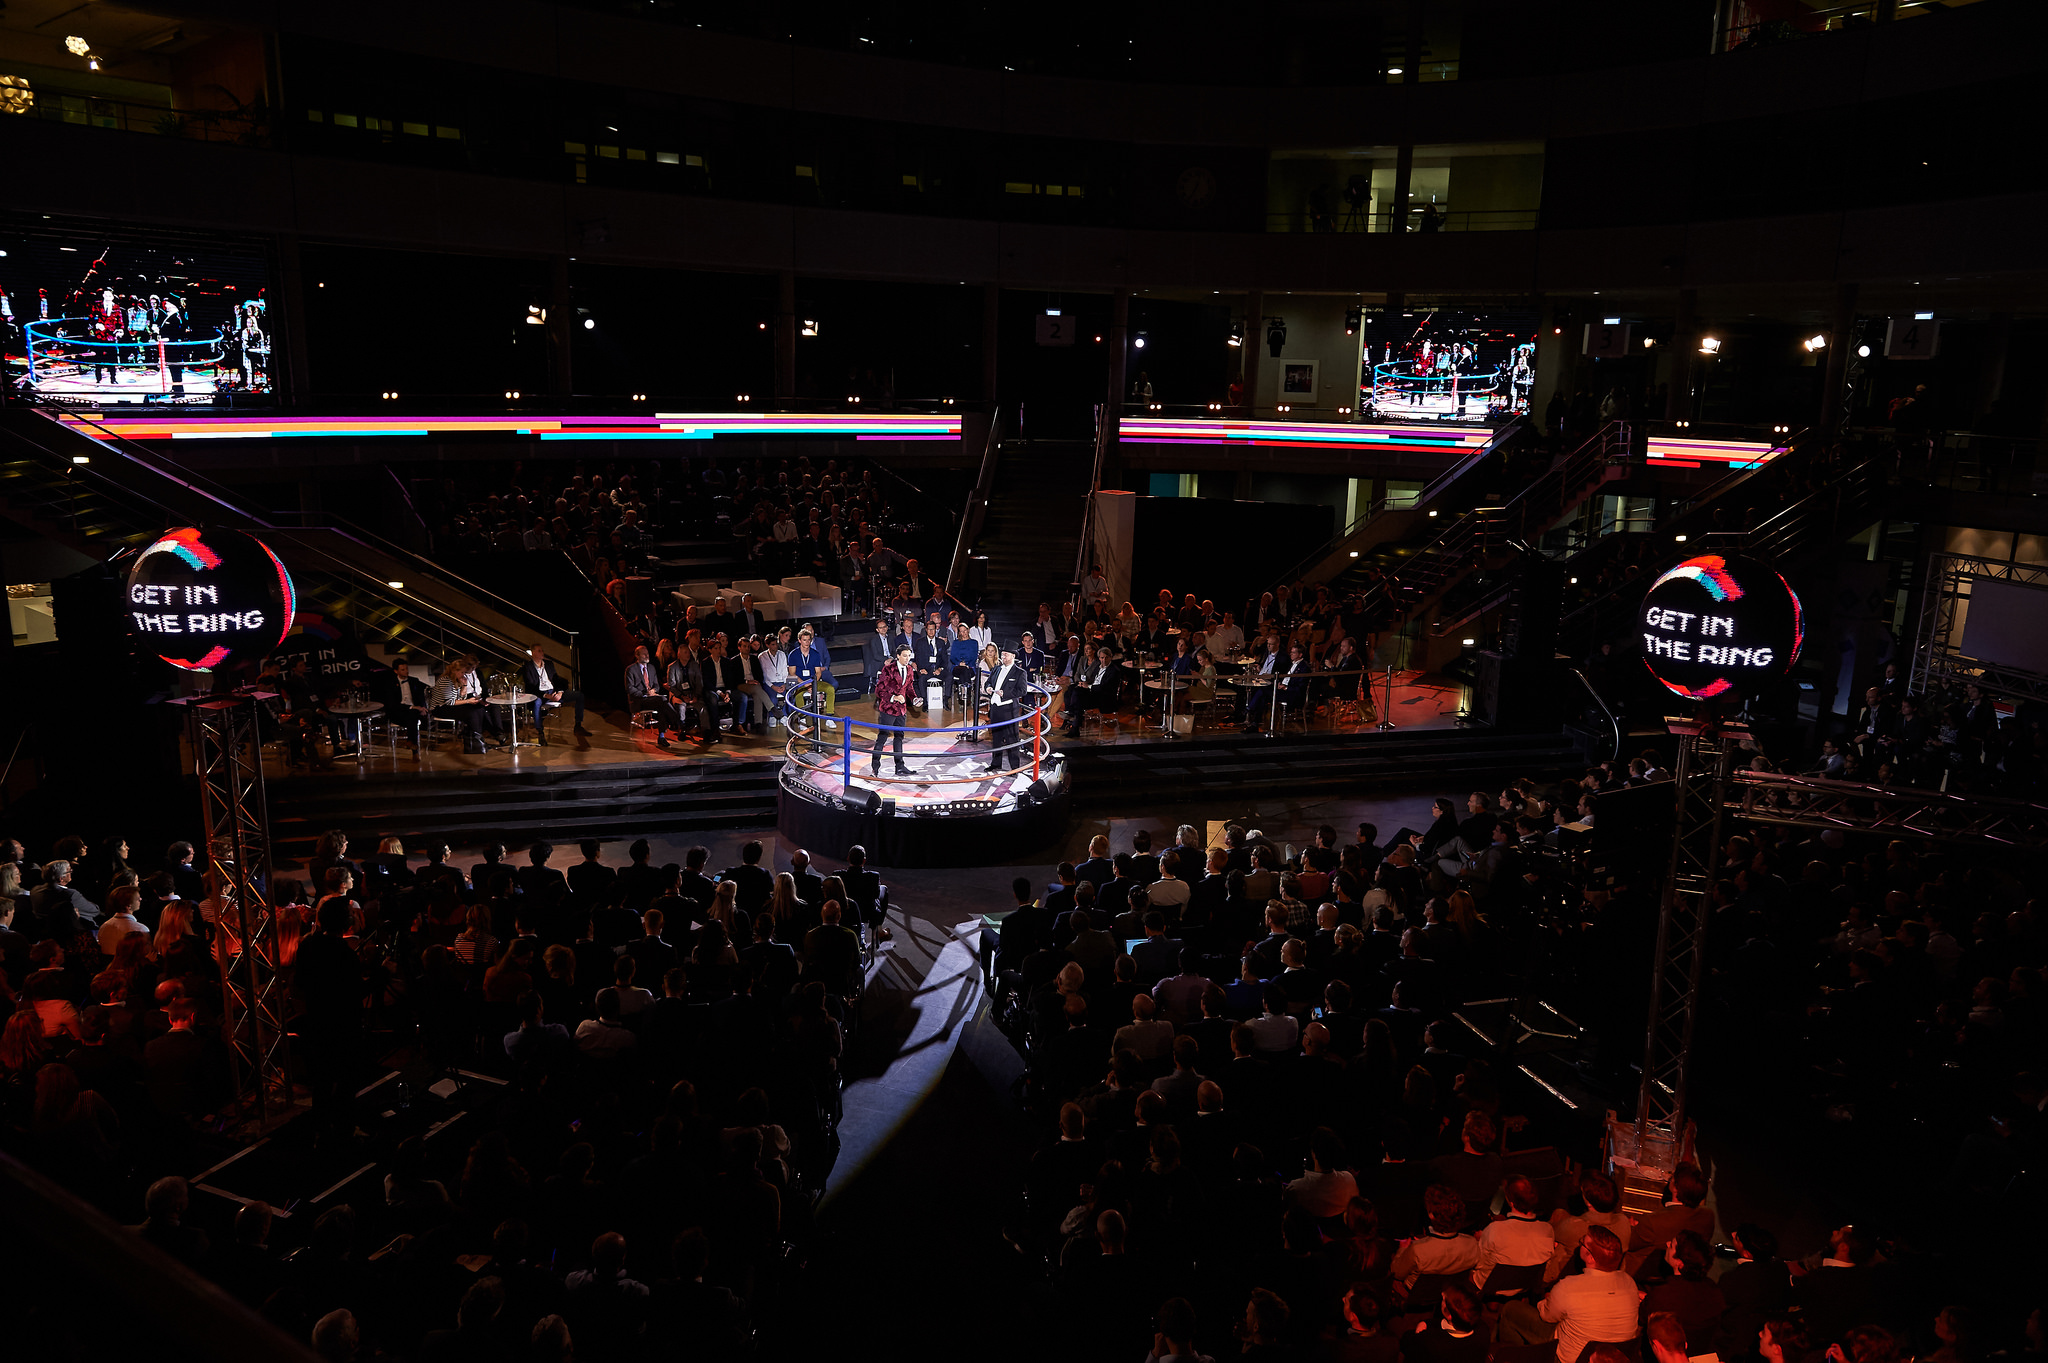 htgt-get-in-the-ring-startlife-photocredits-wouter-went